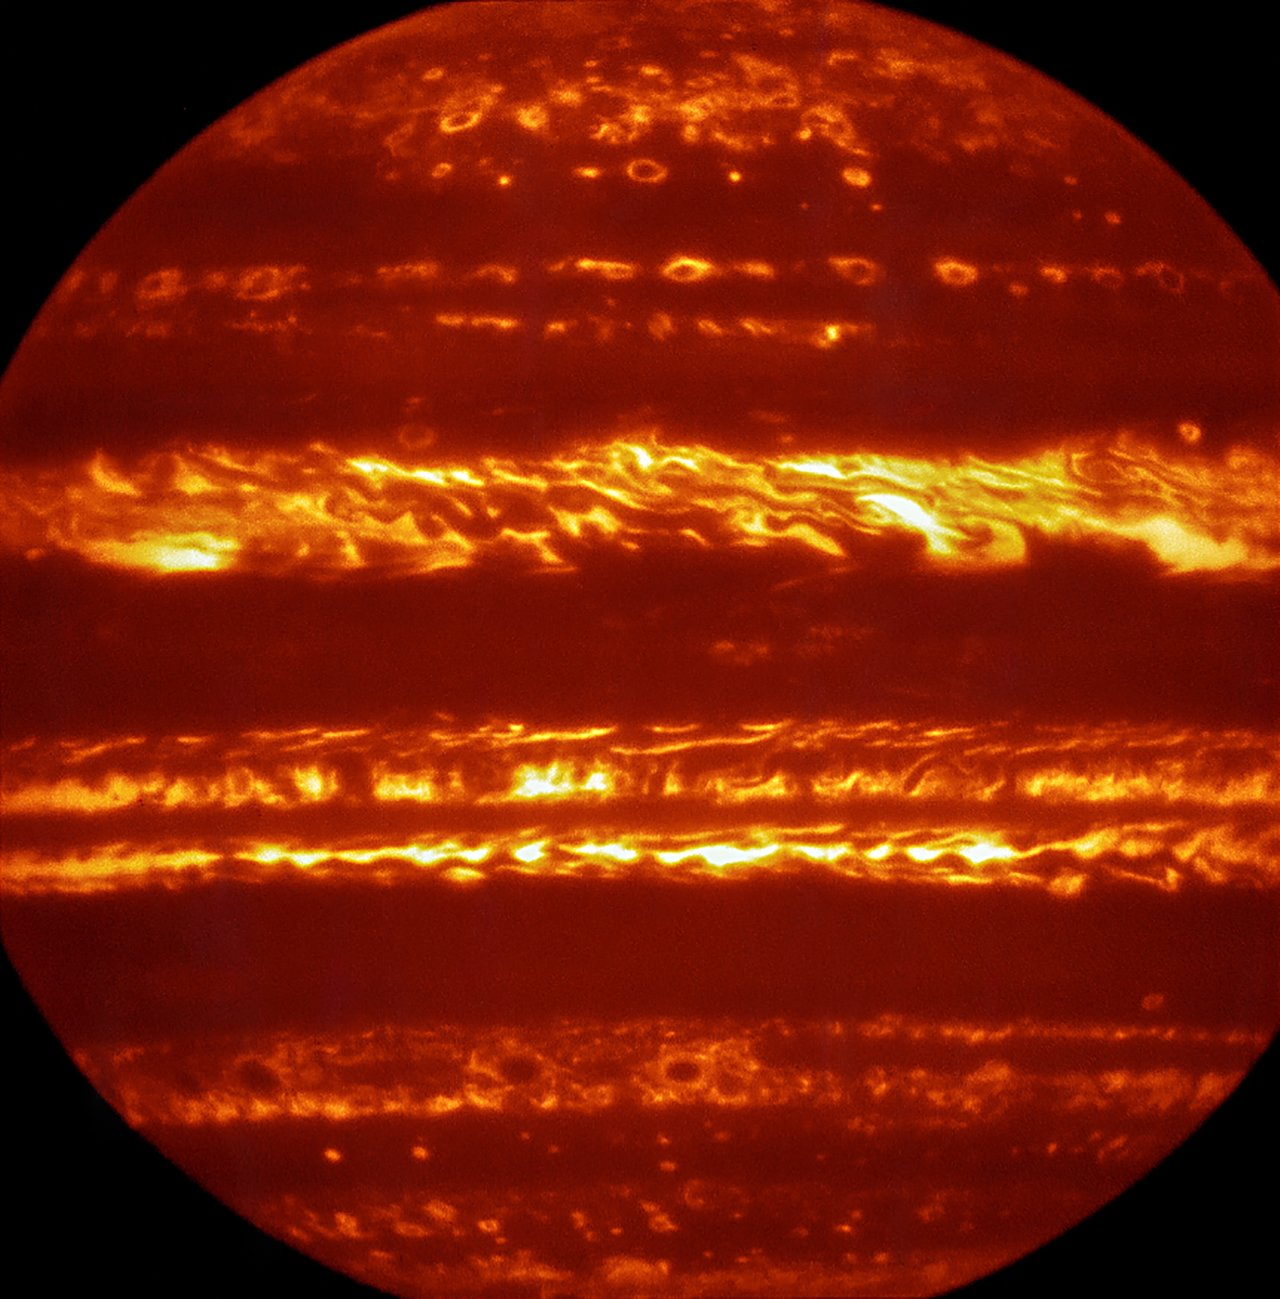 Two Buck Howie : Two-Thousand-Mile-Long Fish In Orbit Around Jupiter